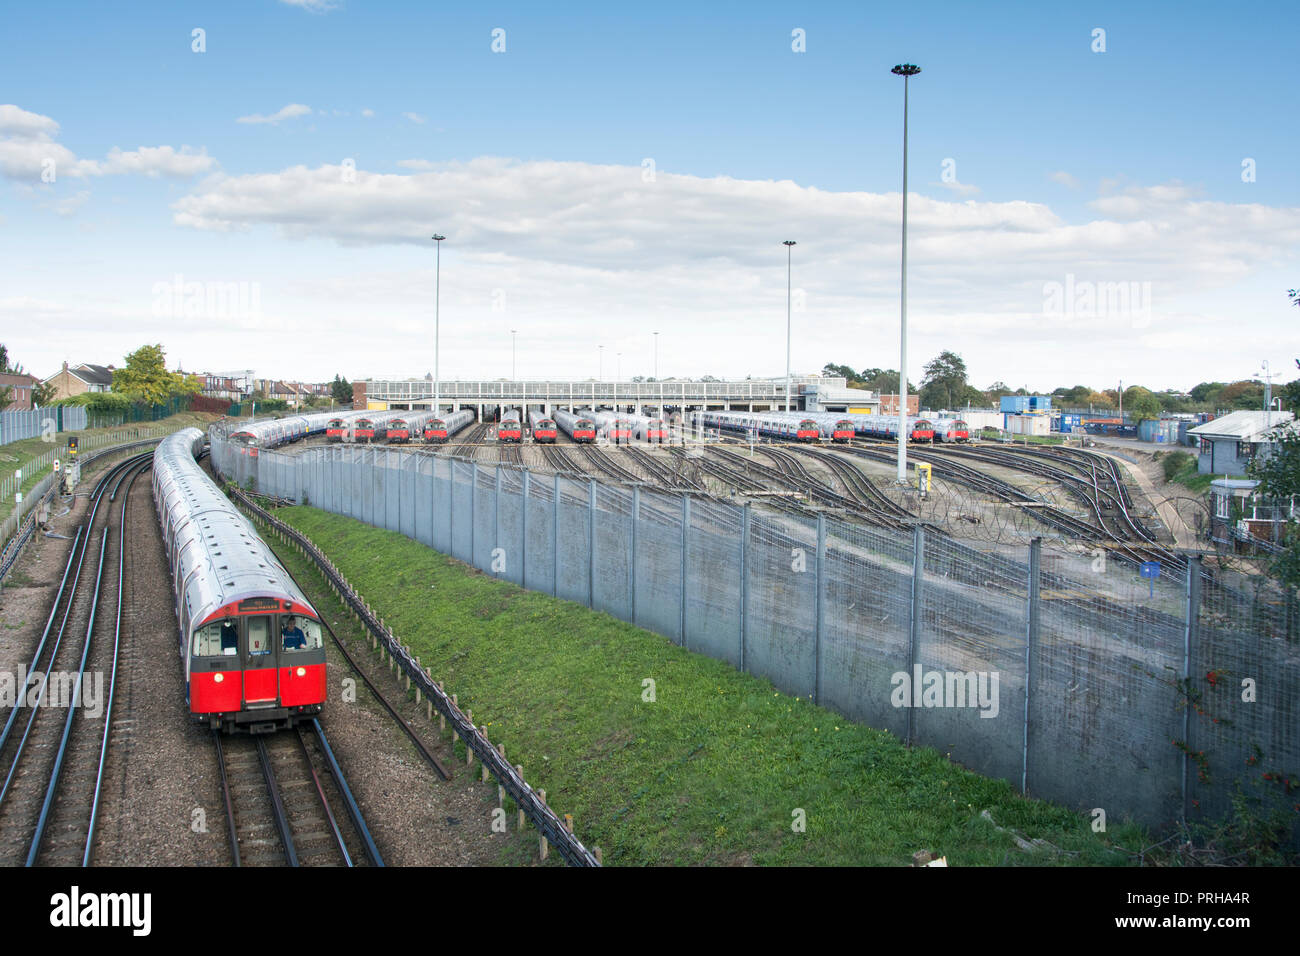 Out of service Piccadilly Line underground trains at Boston Manor depot due to strike action by the RMT. - Stock Image